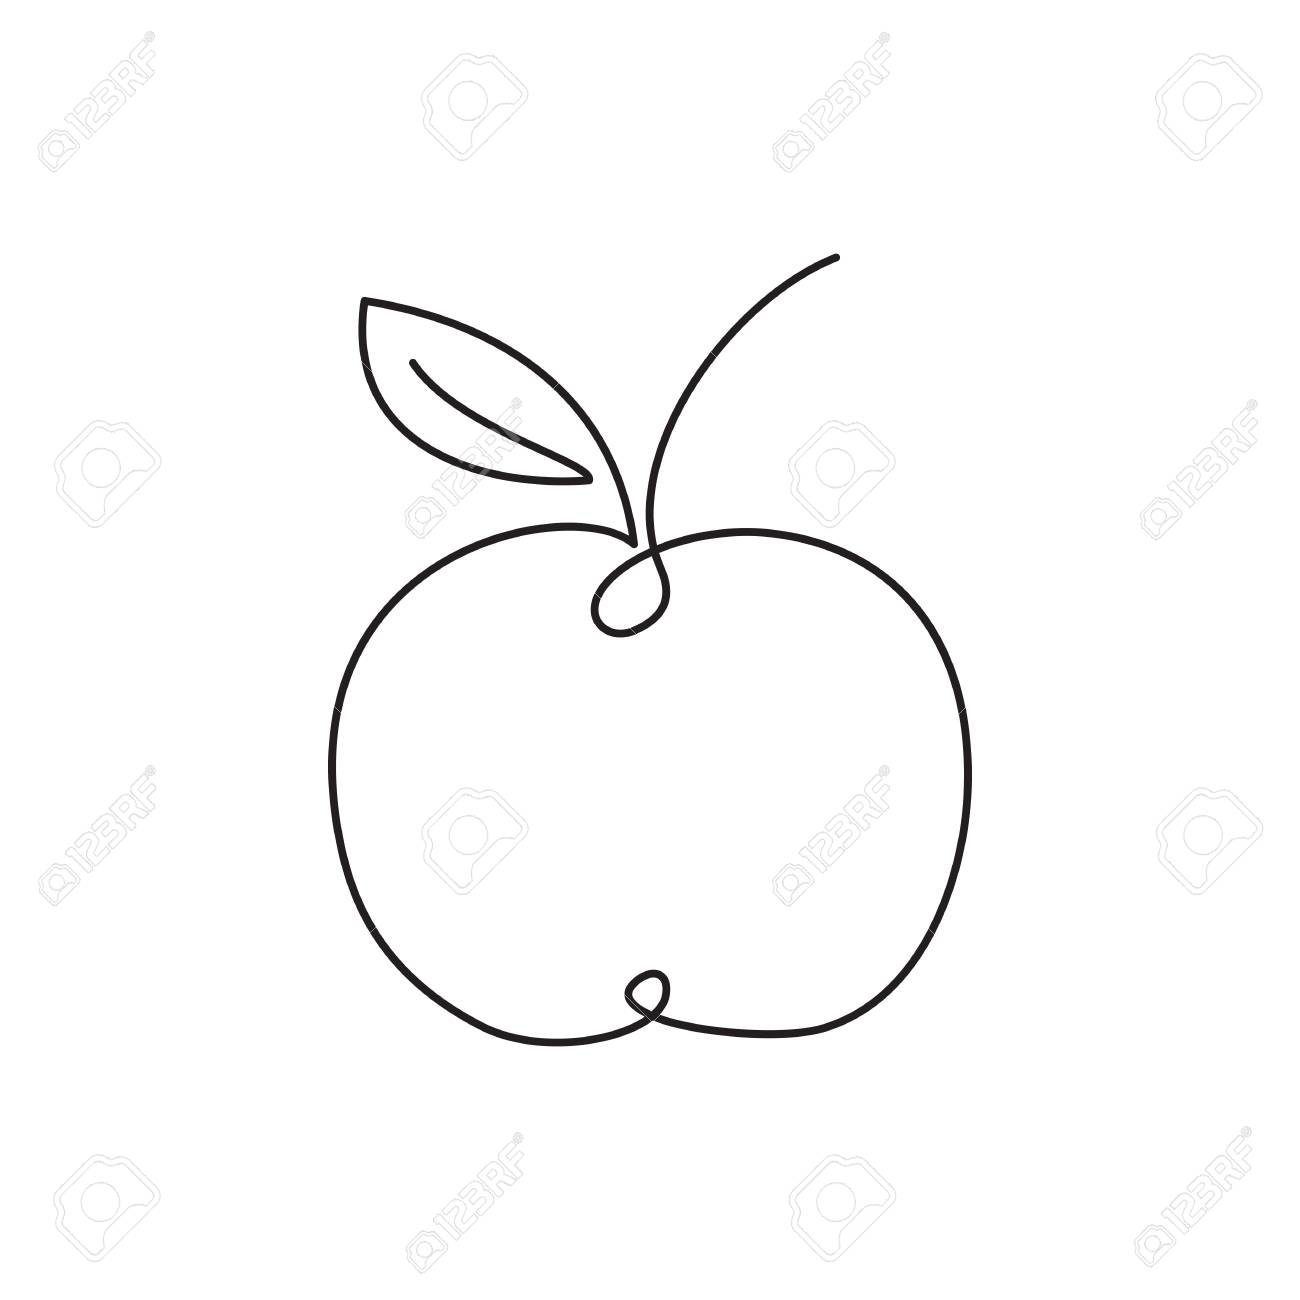 Apple Icon Single Line Drawing Art Royalty Free Cliparts Vectors And Stock Illustration Image 99074757